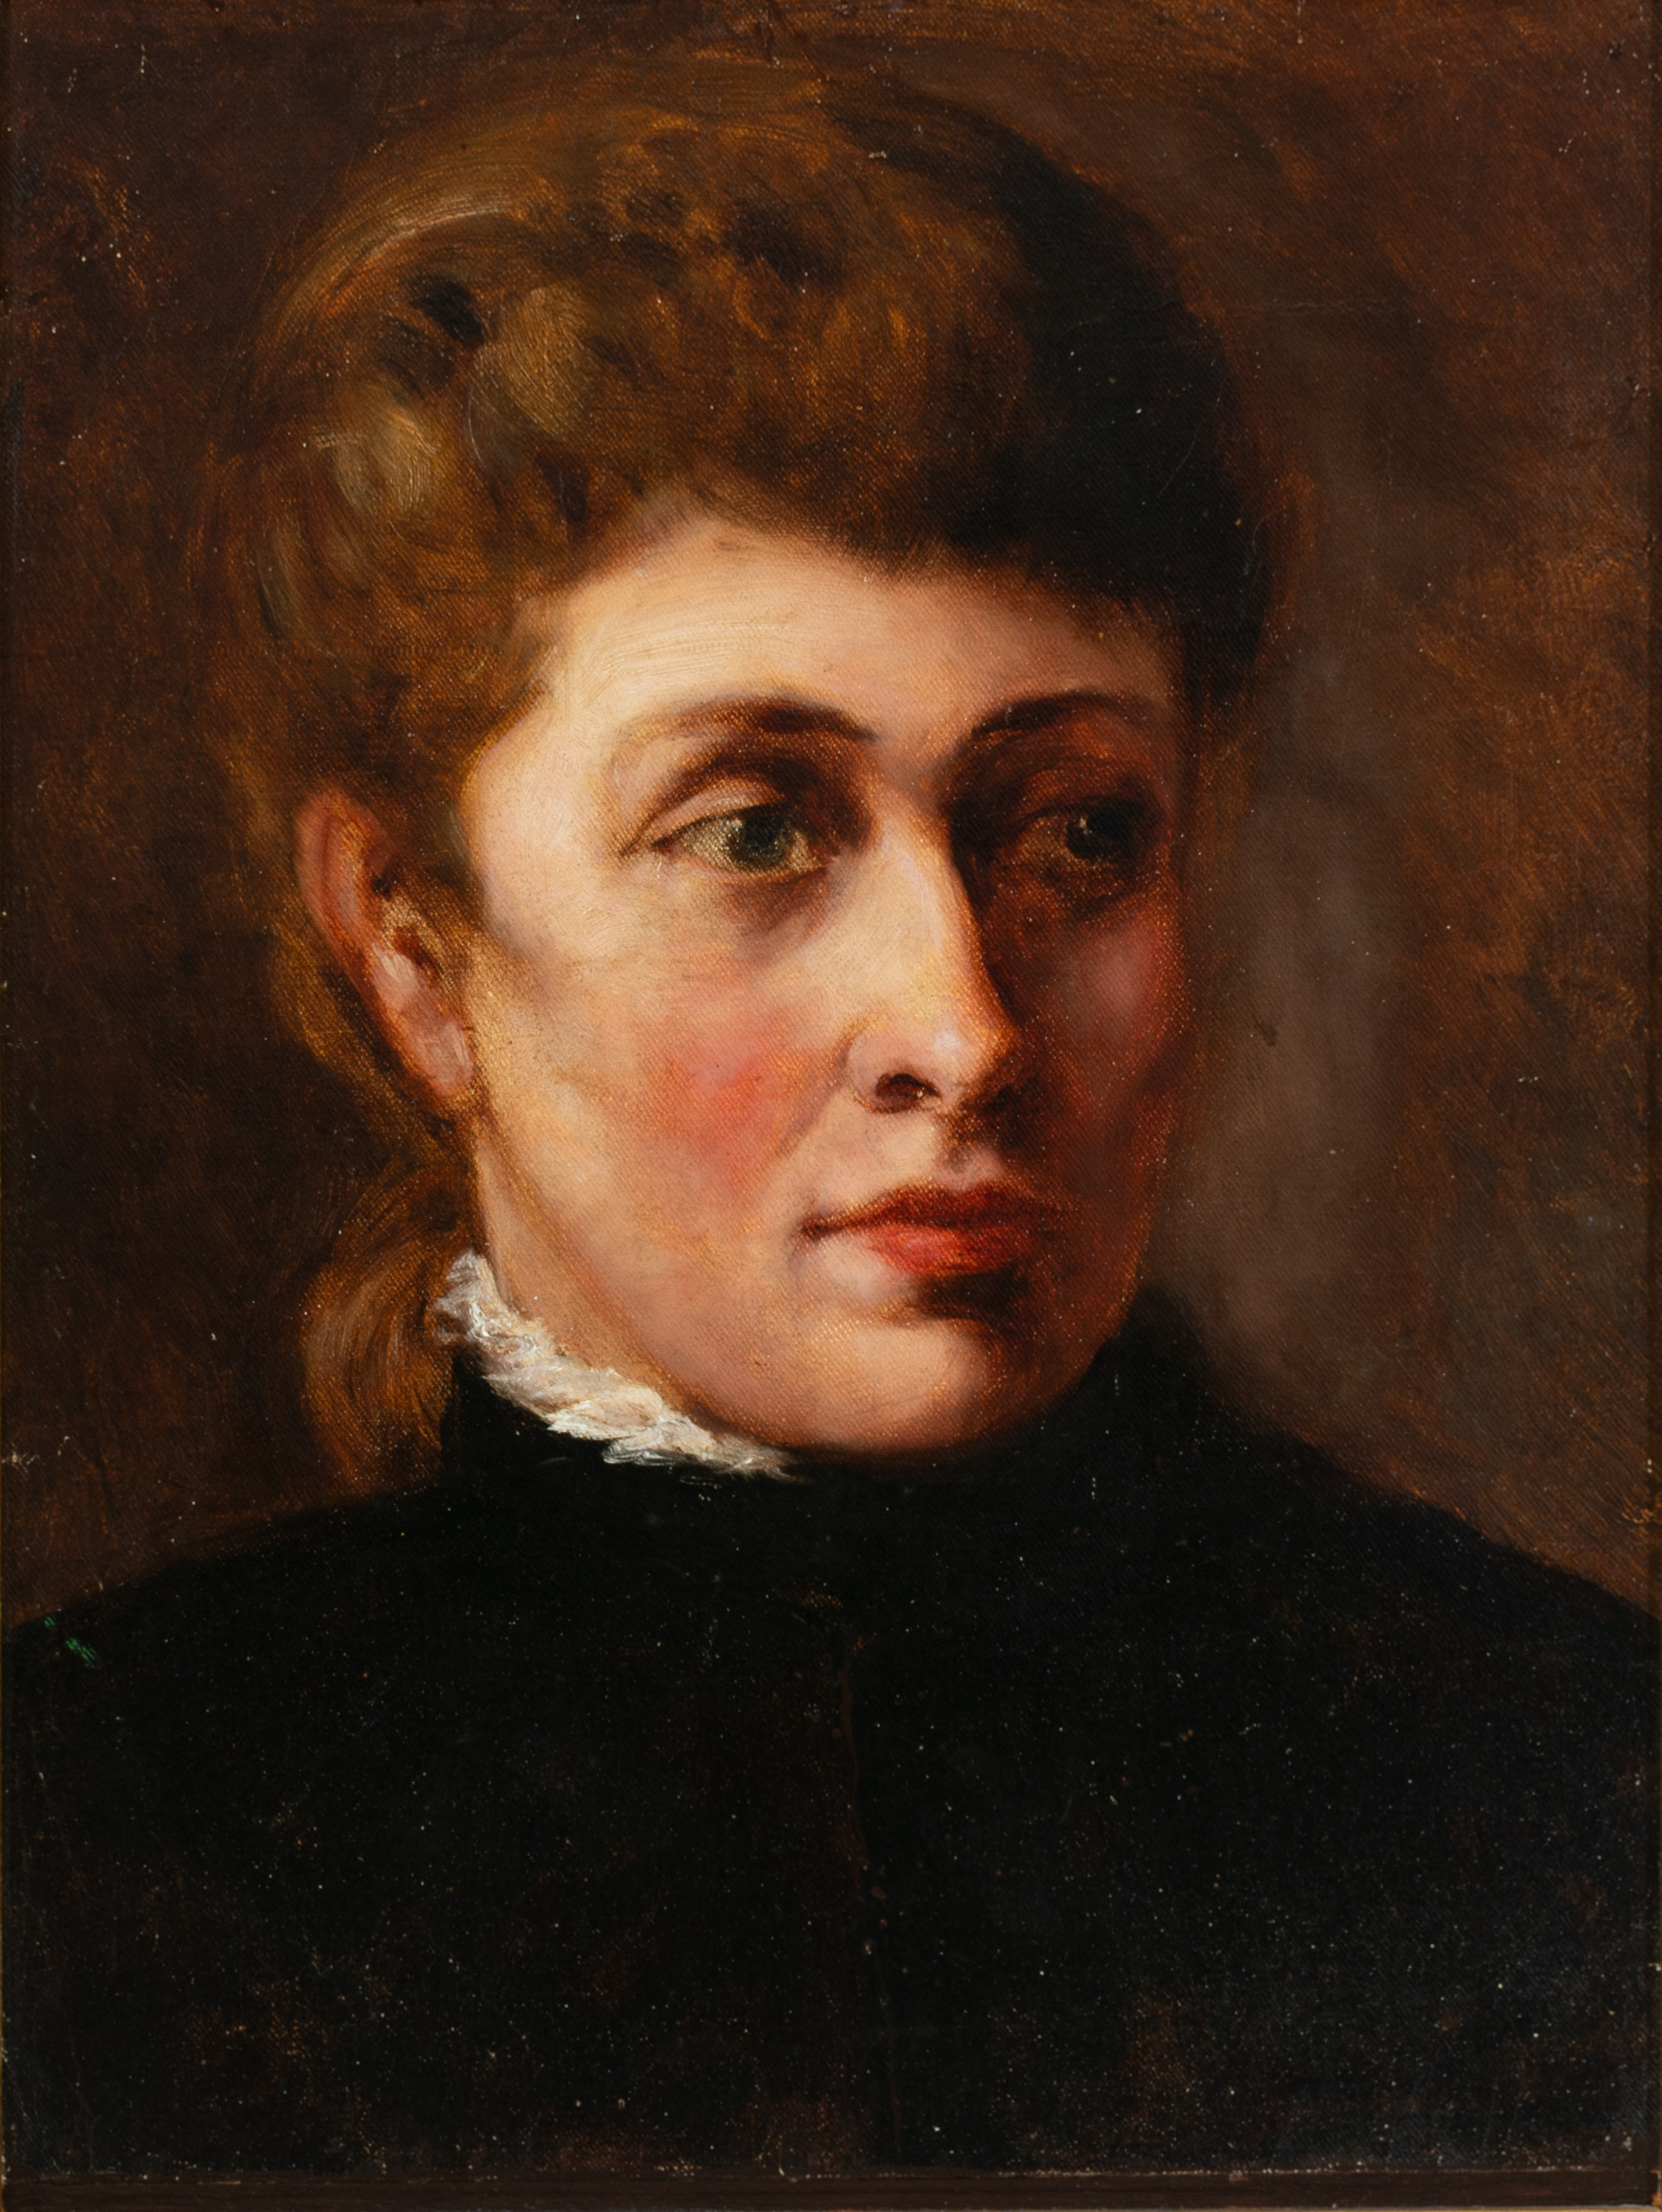 Carrie Anderson (1858-1945) Mary McHenry Keith, n.d., oil on board, 15 x 12 ¼ inches, Saint Mary's College Museum of Art Permanent Collection, 0-20